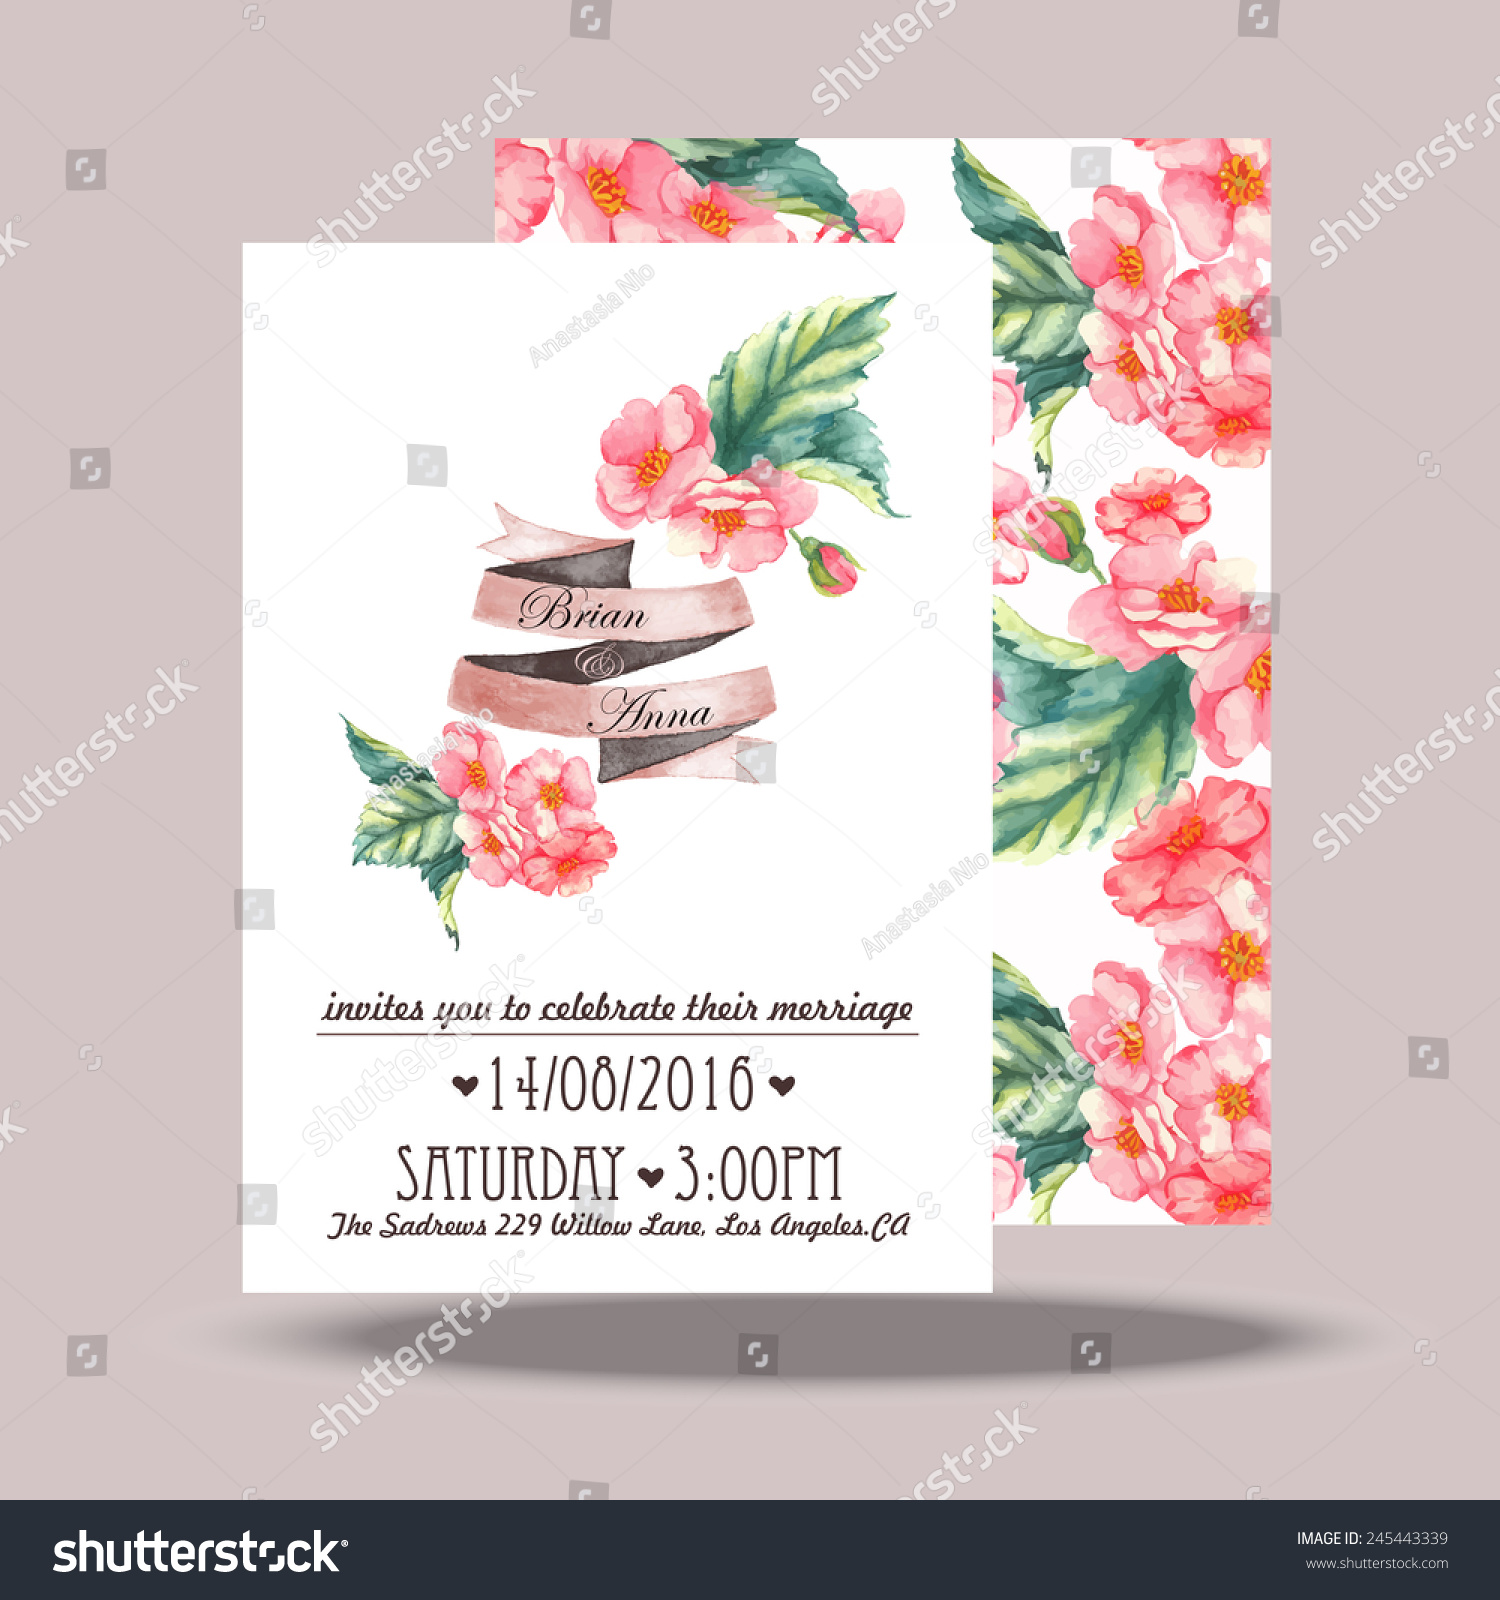 Wedding invitation card template hand drawn em vetor stock 245443339 wedding invitation card template hand drawn watercolor design with tender pink flowers and leaves stopboris Images